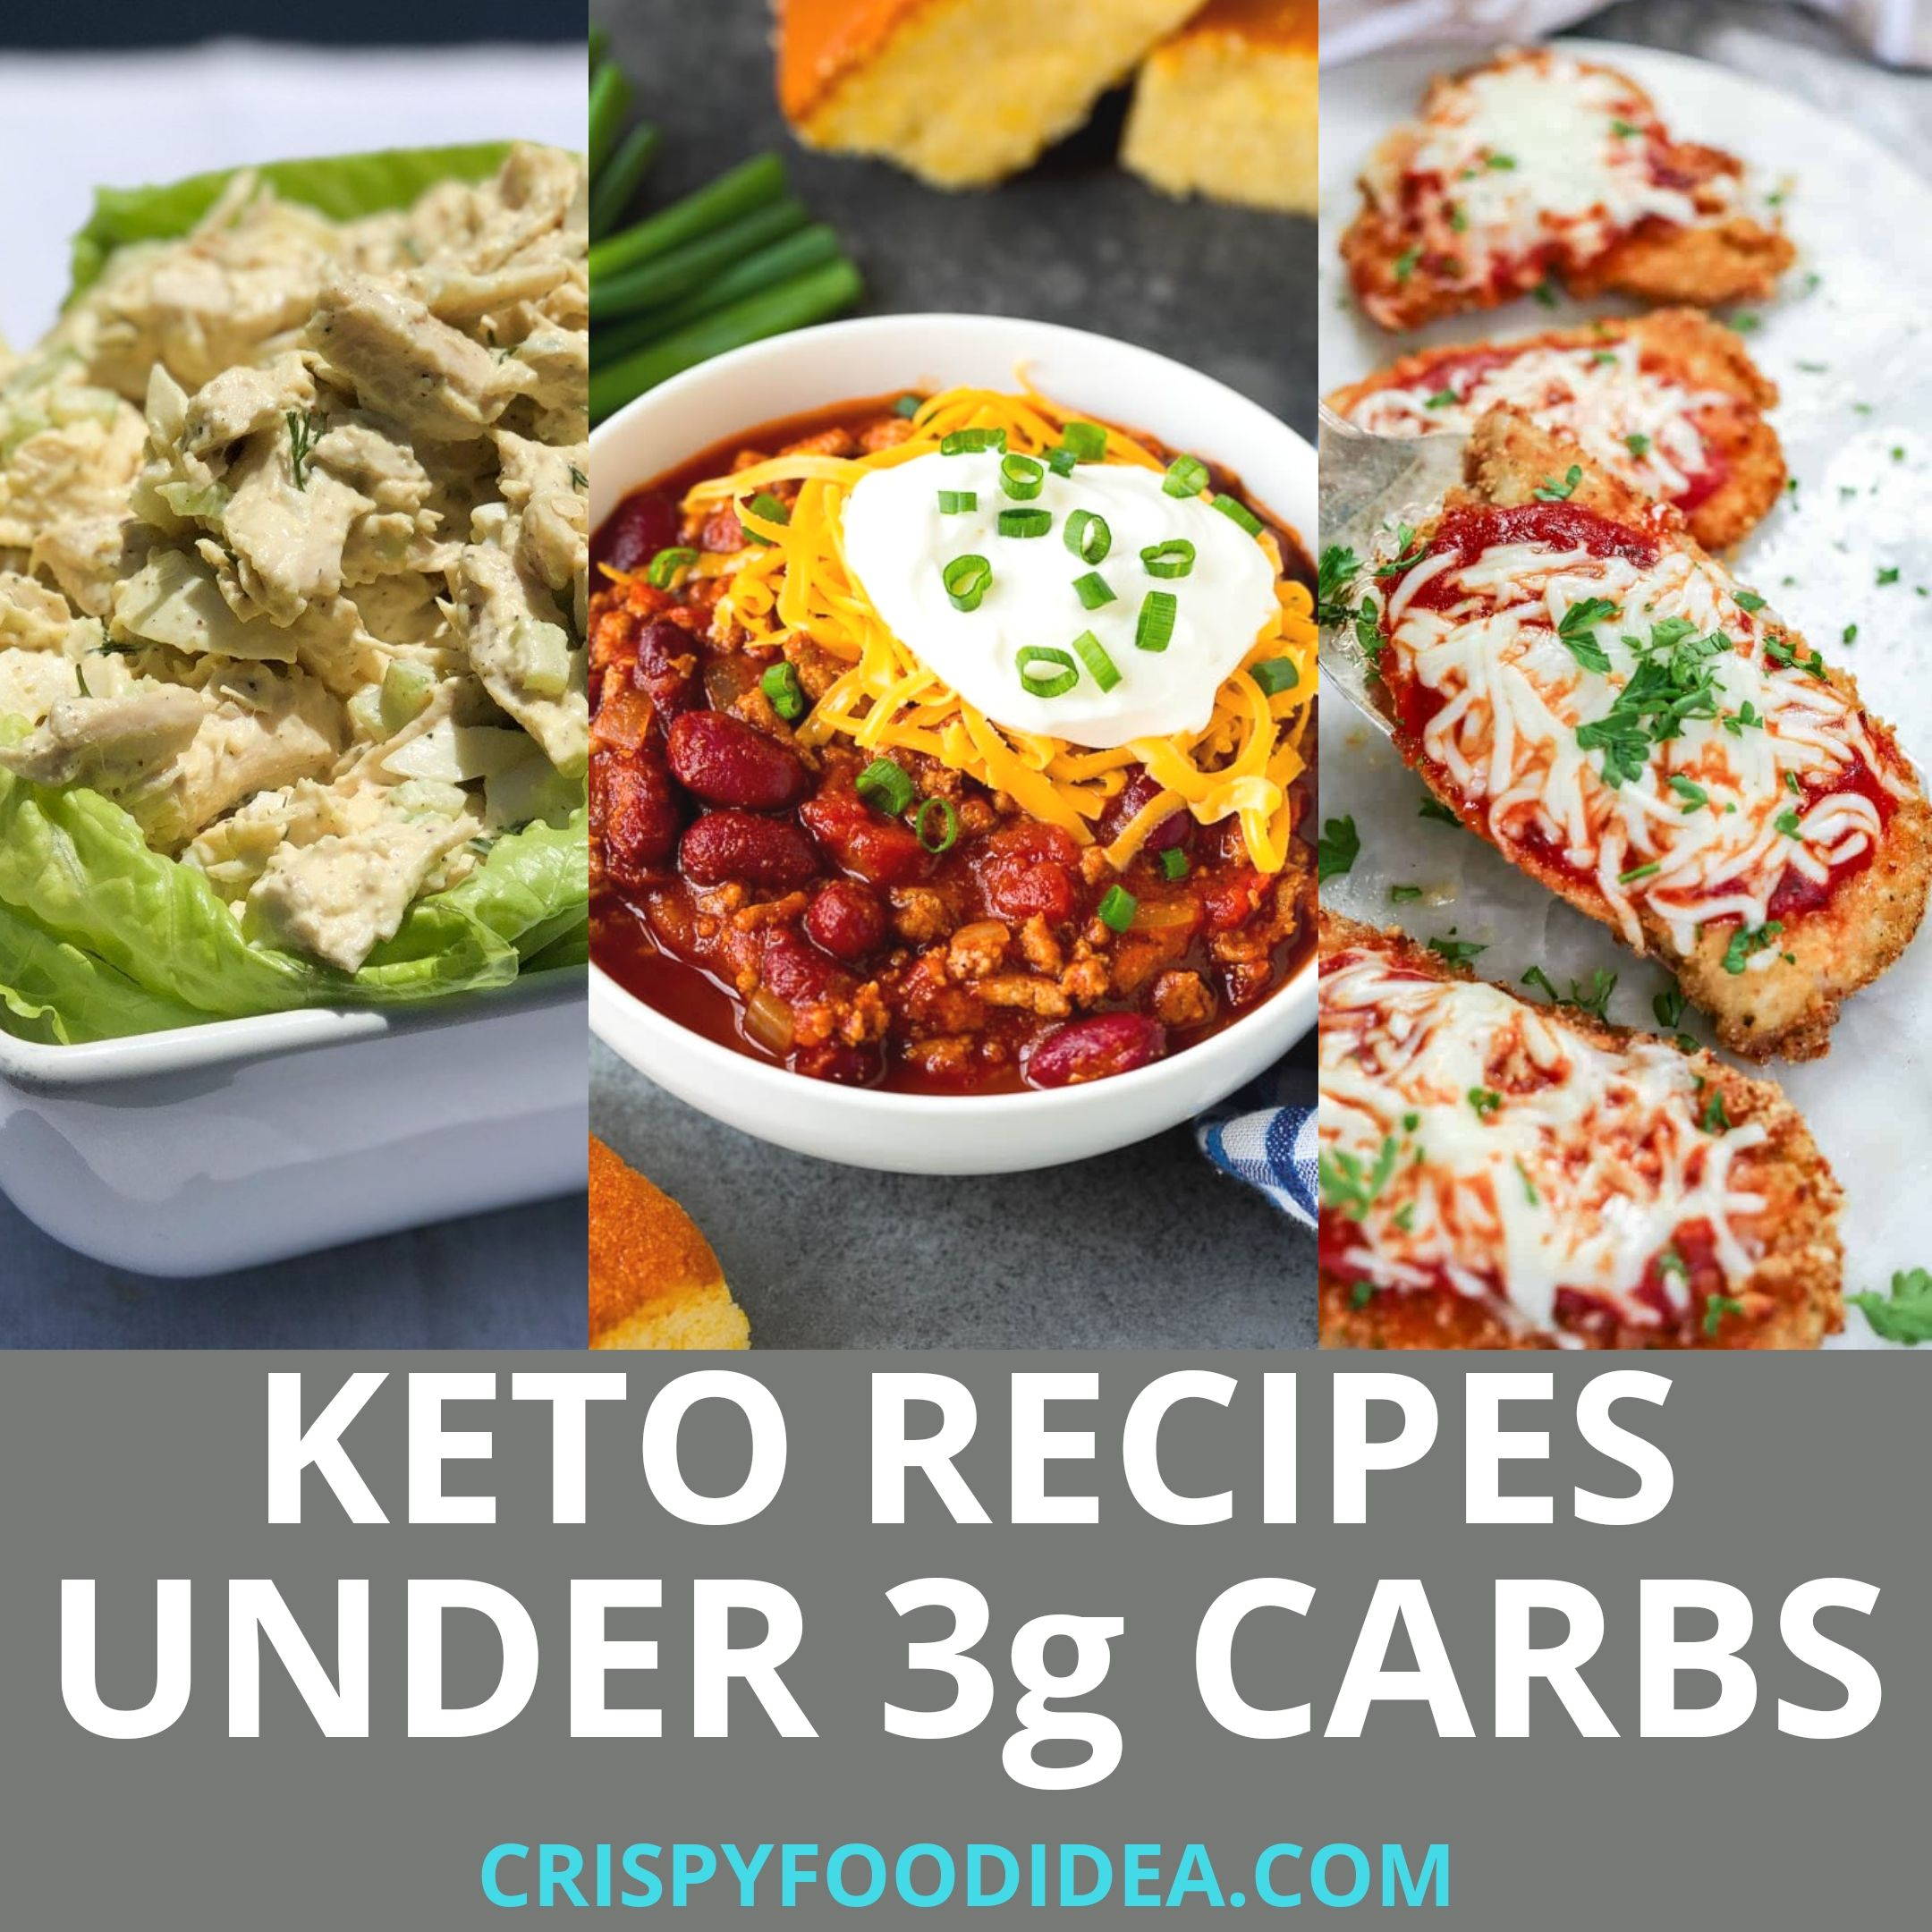 Keto Recipes Under 3 Carbs